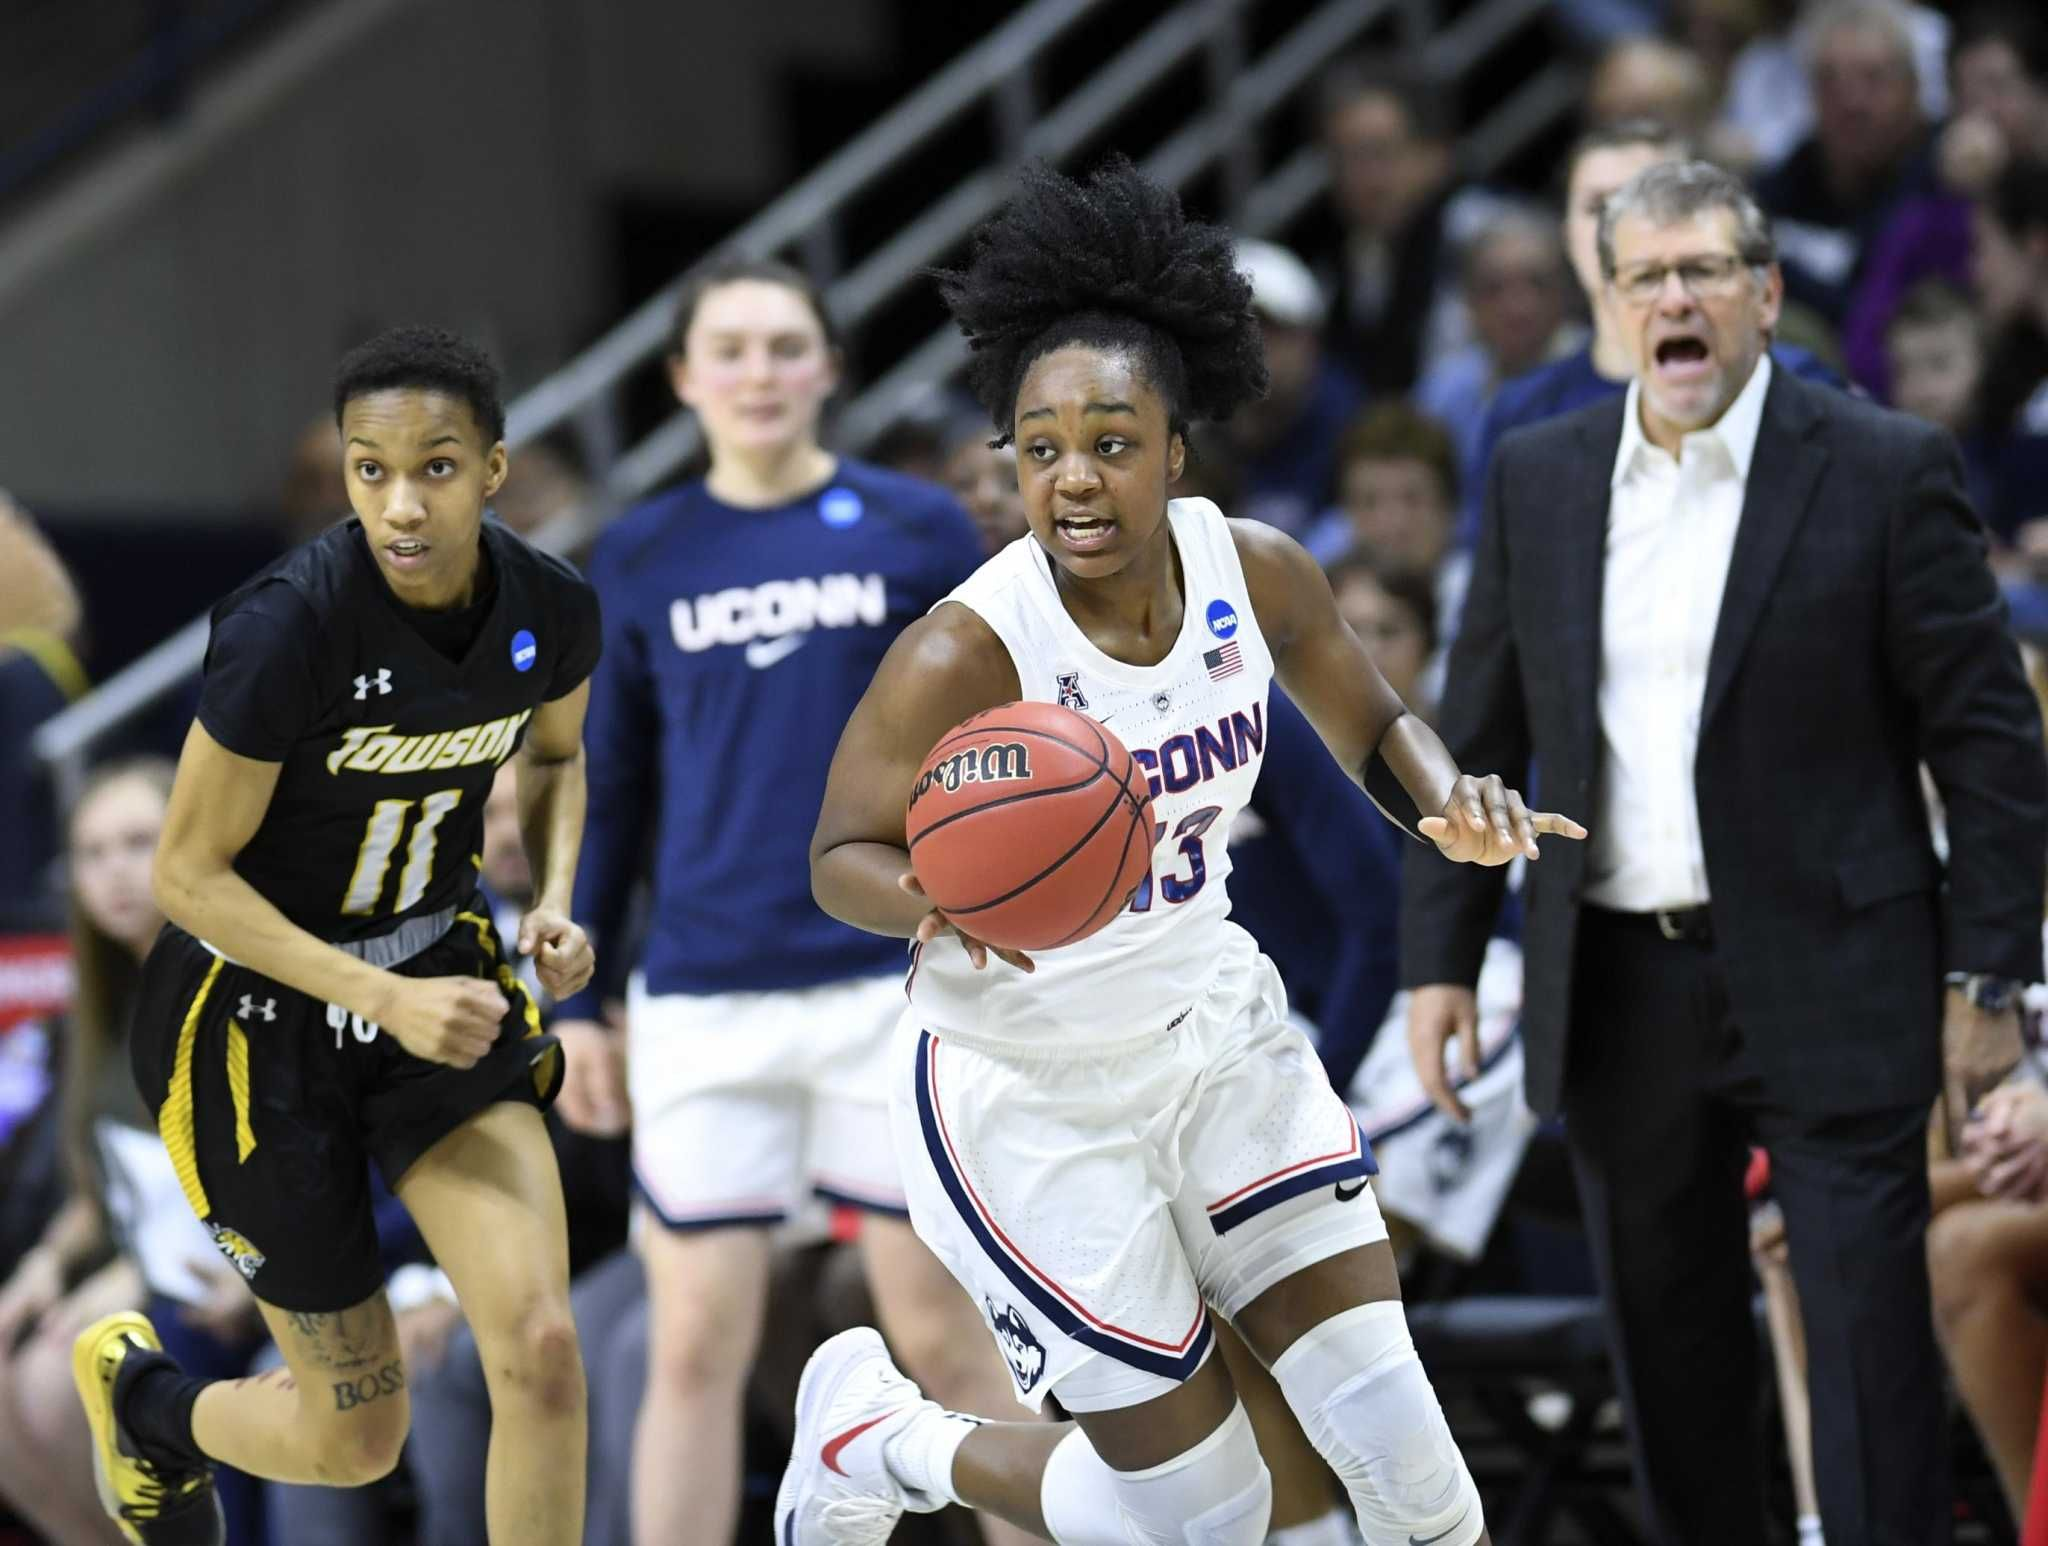 With Samuelson back, UConn rolls past Towson in NCAA